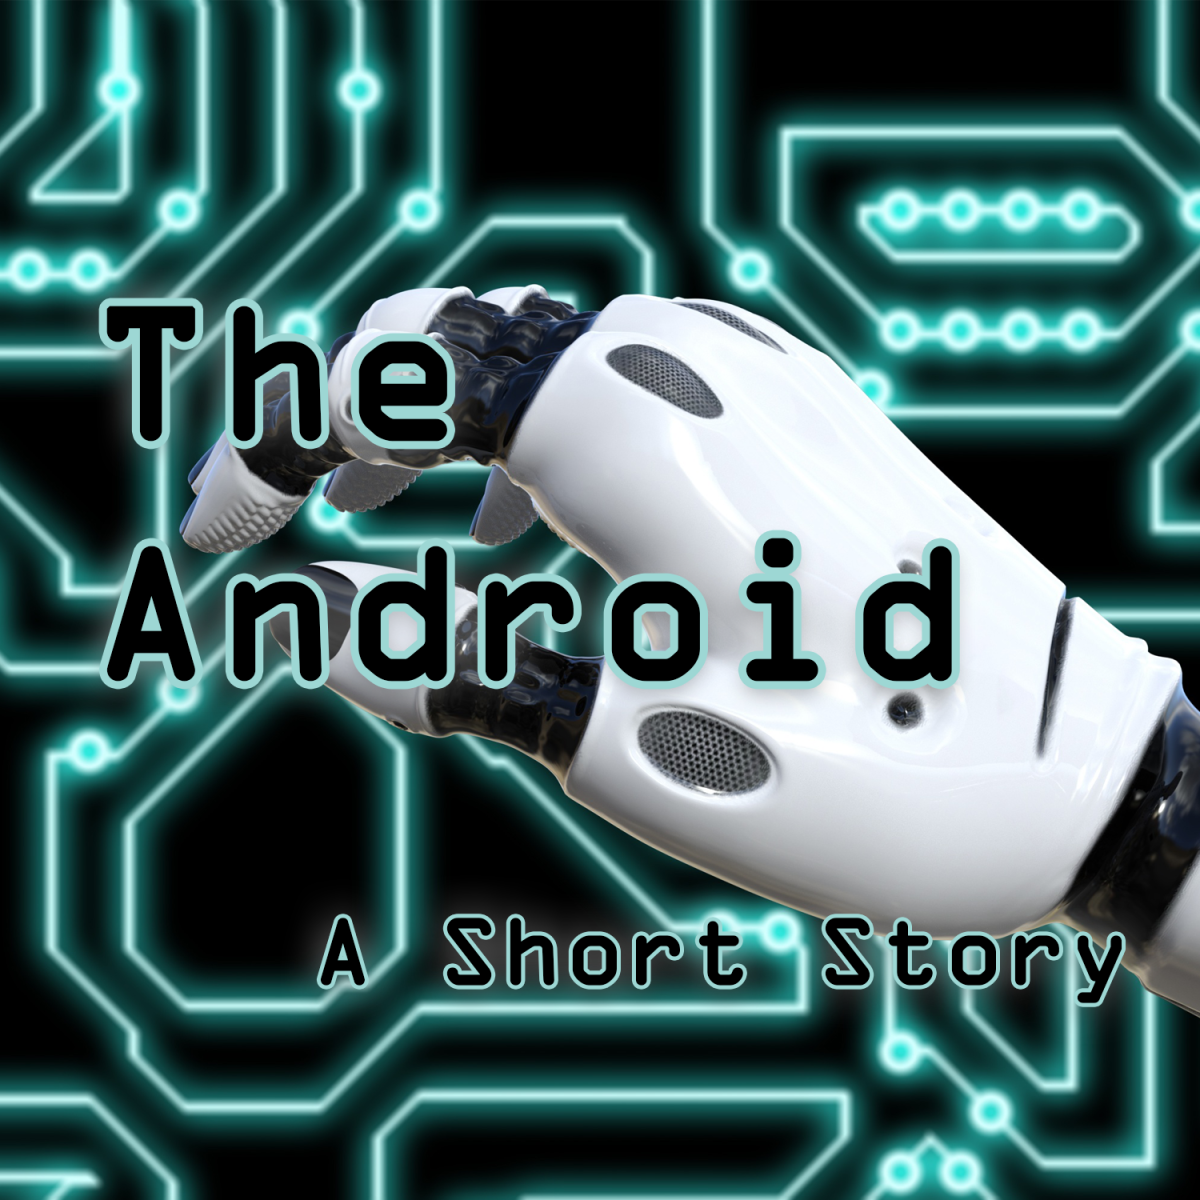 The Android: A Short Story